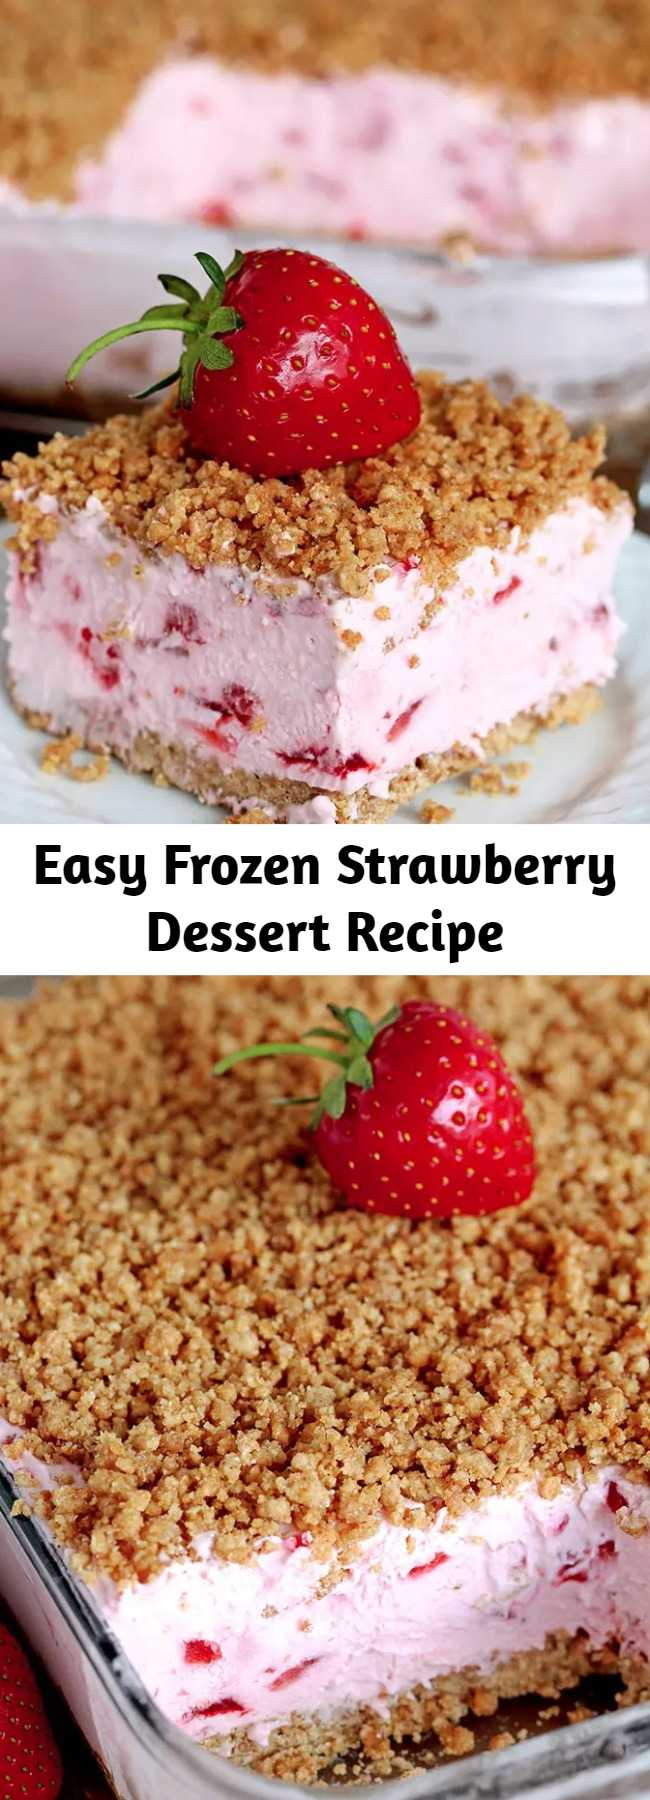 Easy Frozen Strawberry Dessert Recipe - Easy Frozen Strawberry Dessert a perfect spring and summer dessert for all strawberry fans. This refreshing, creamy, frozen dessert made with fresh strawberries and a crunchy graham cracker layer, topped with graham cracker crumbs is very quick and easy to prepare.